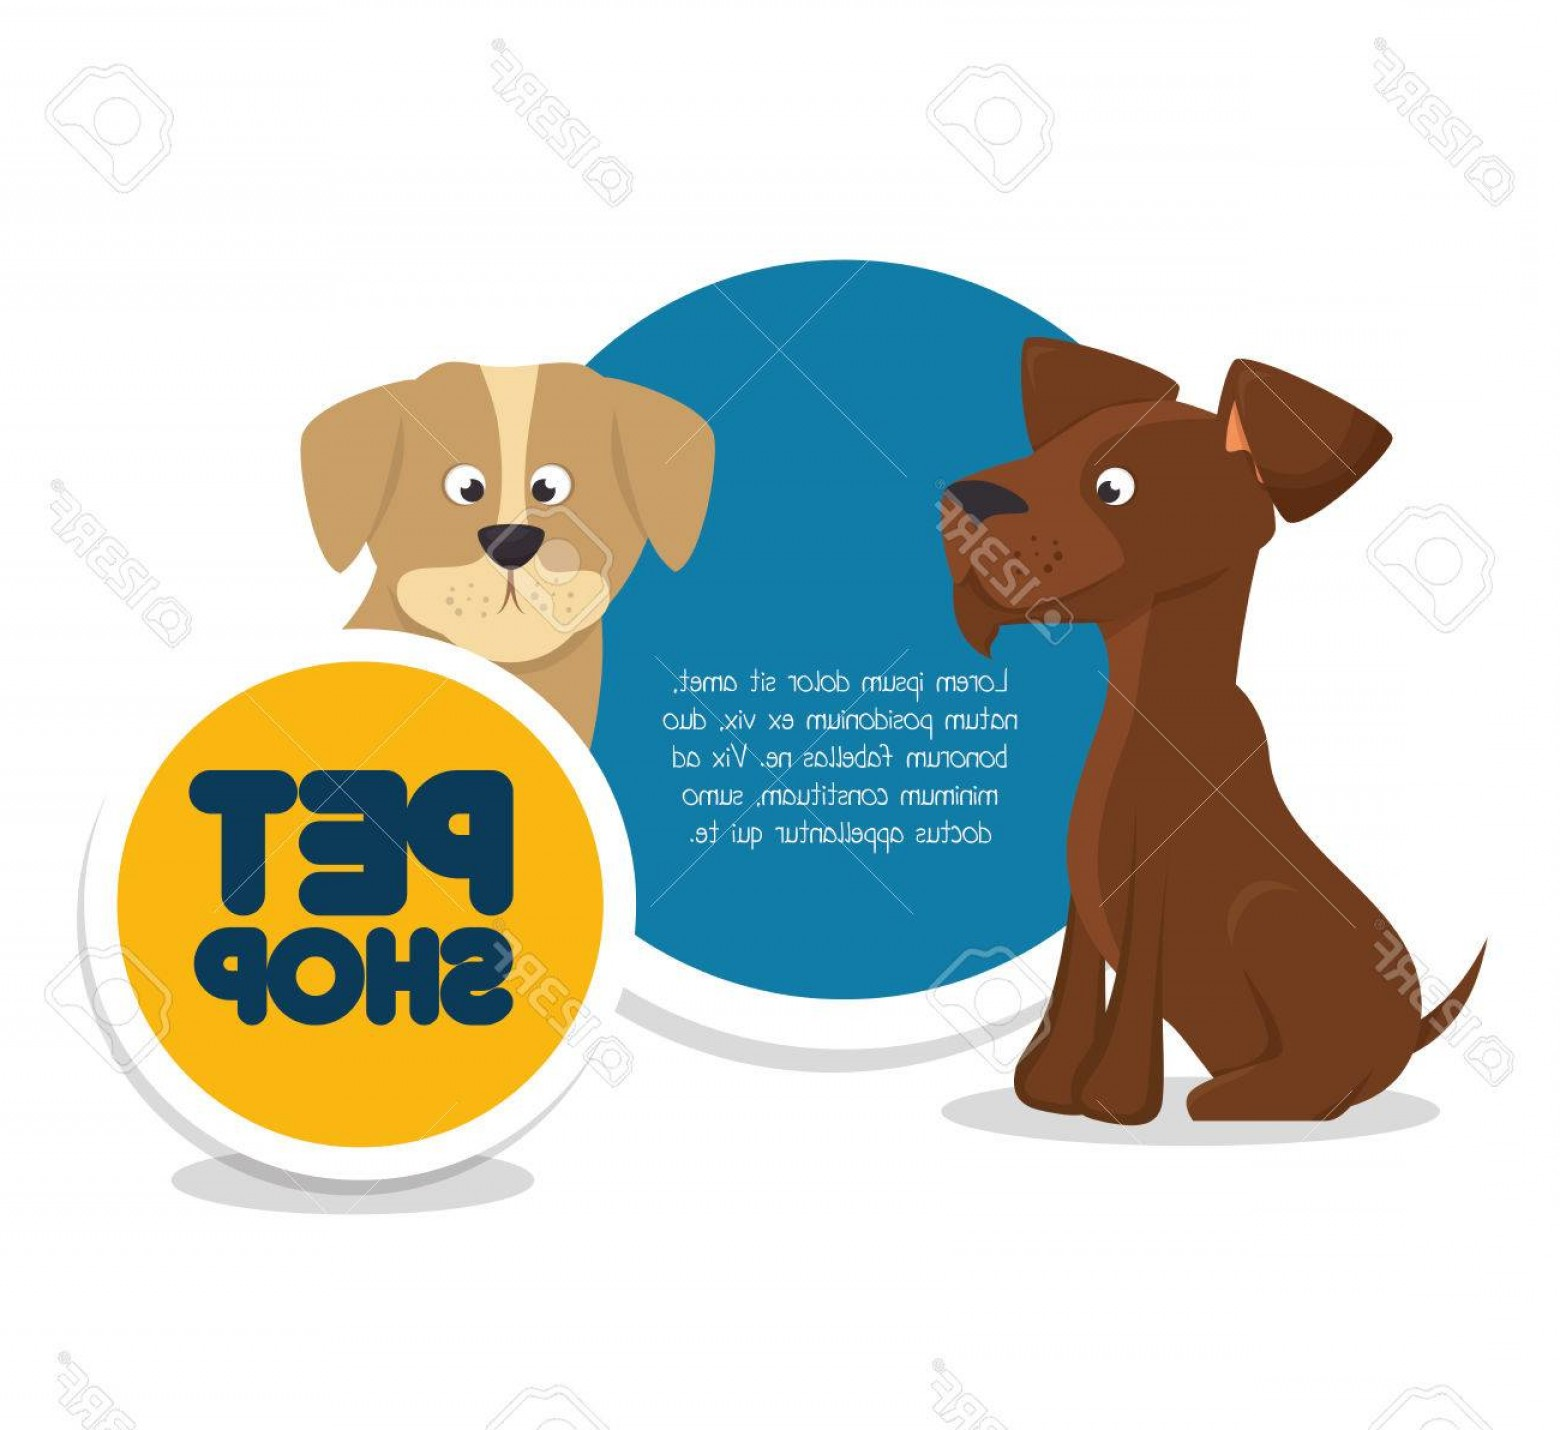 Dog And Cat Vector Illustration: Photostock Vector Pet Shop Template And Dog Cat Vector Illustration